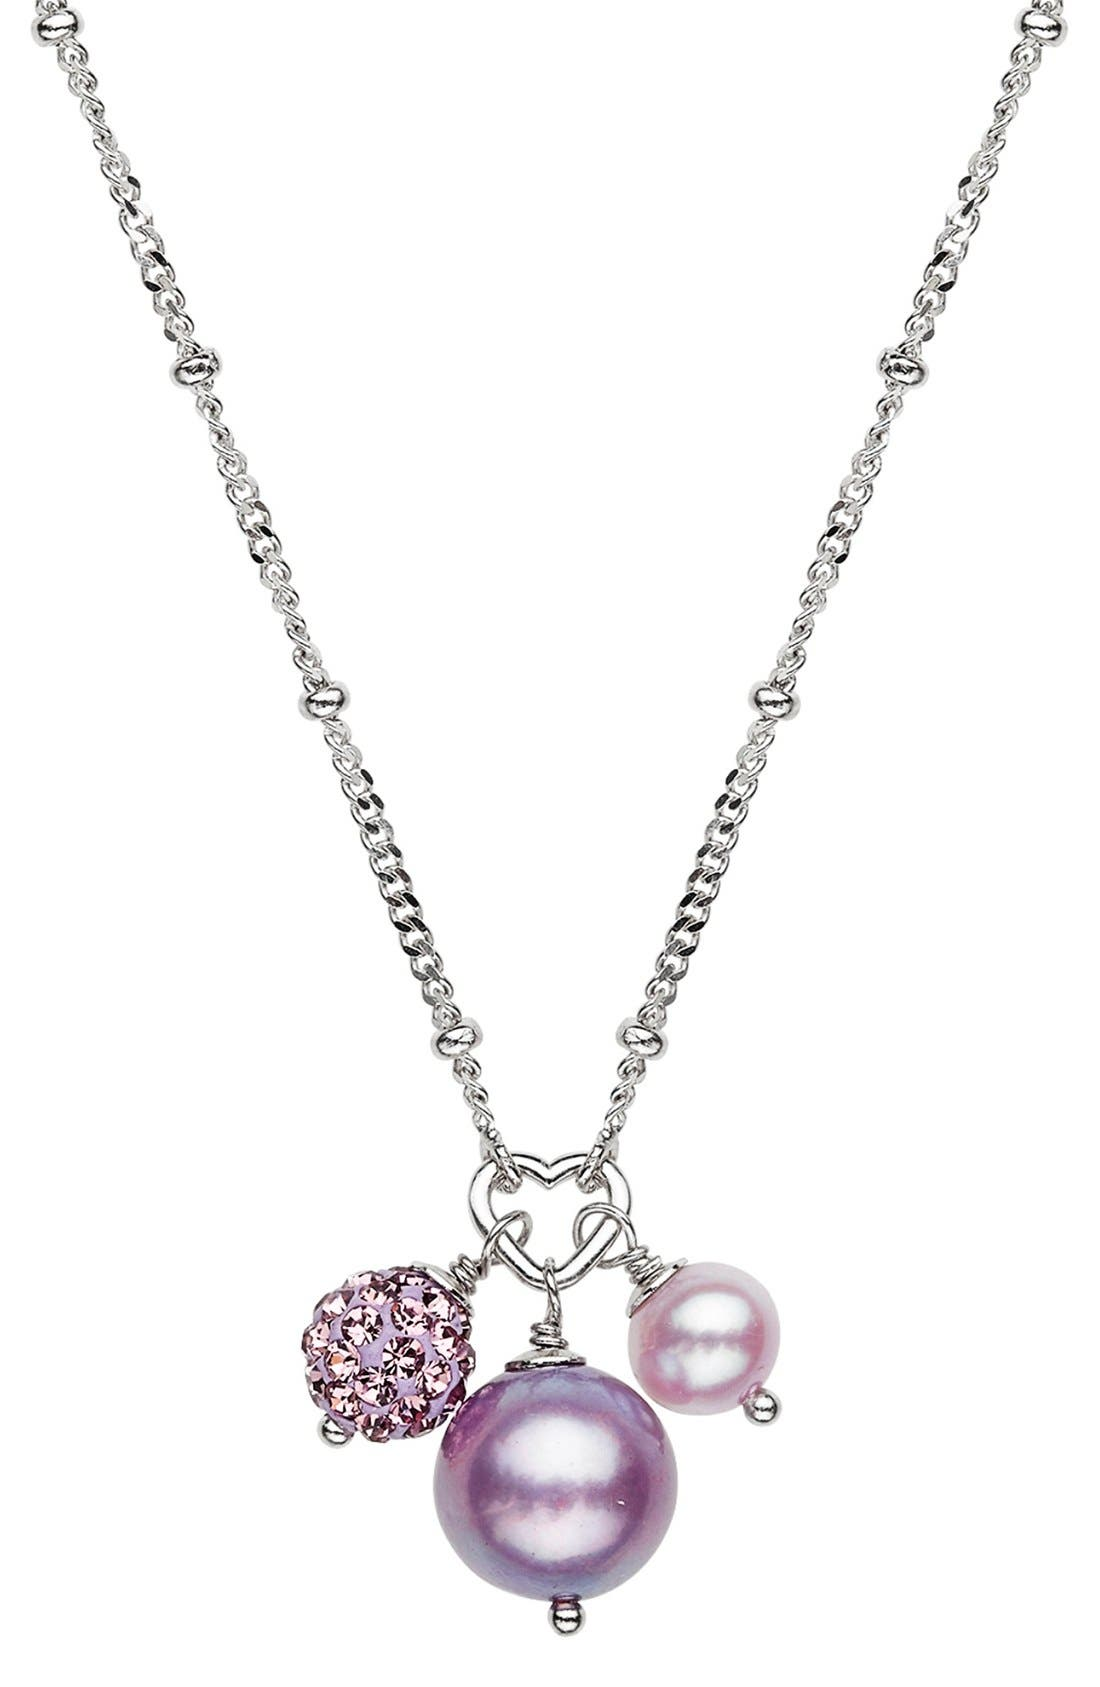 Freshwater Pearl & Crystal Necklace,                             Main thumbnail 1, color,                             LILAC